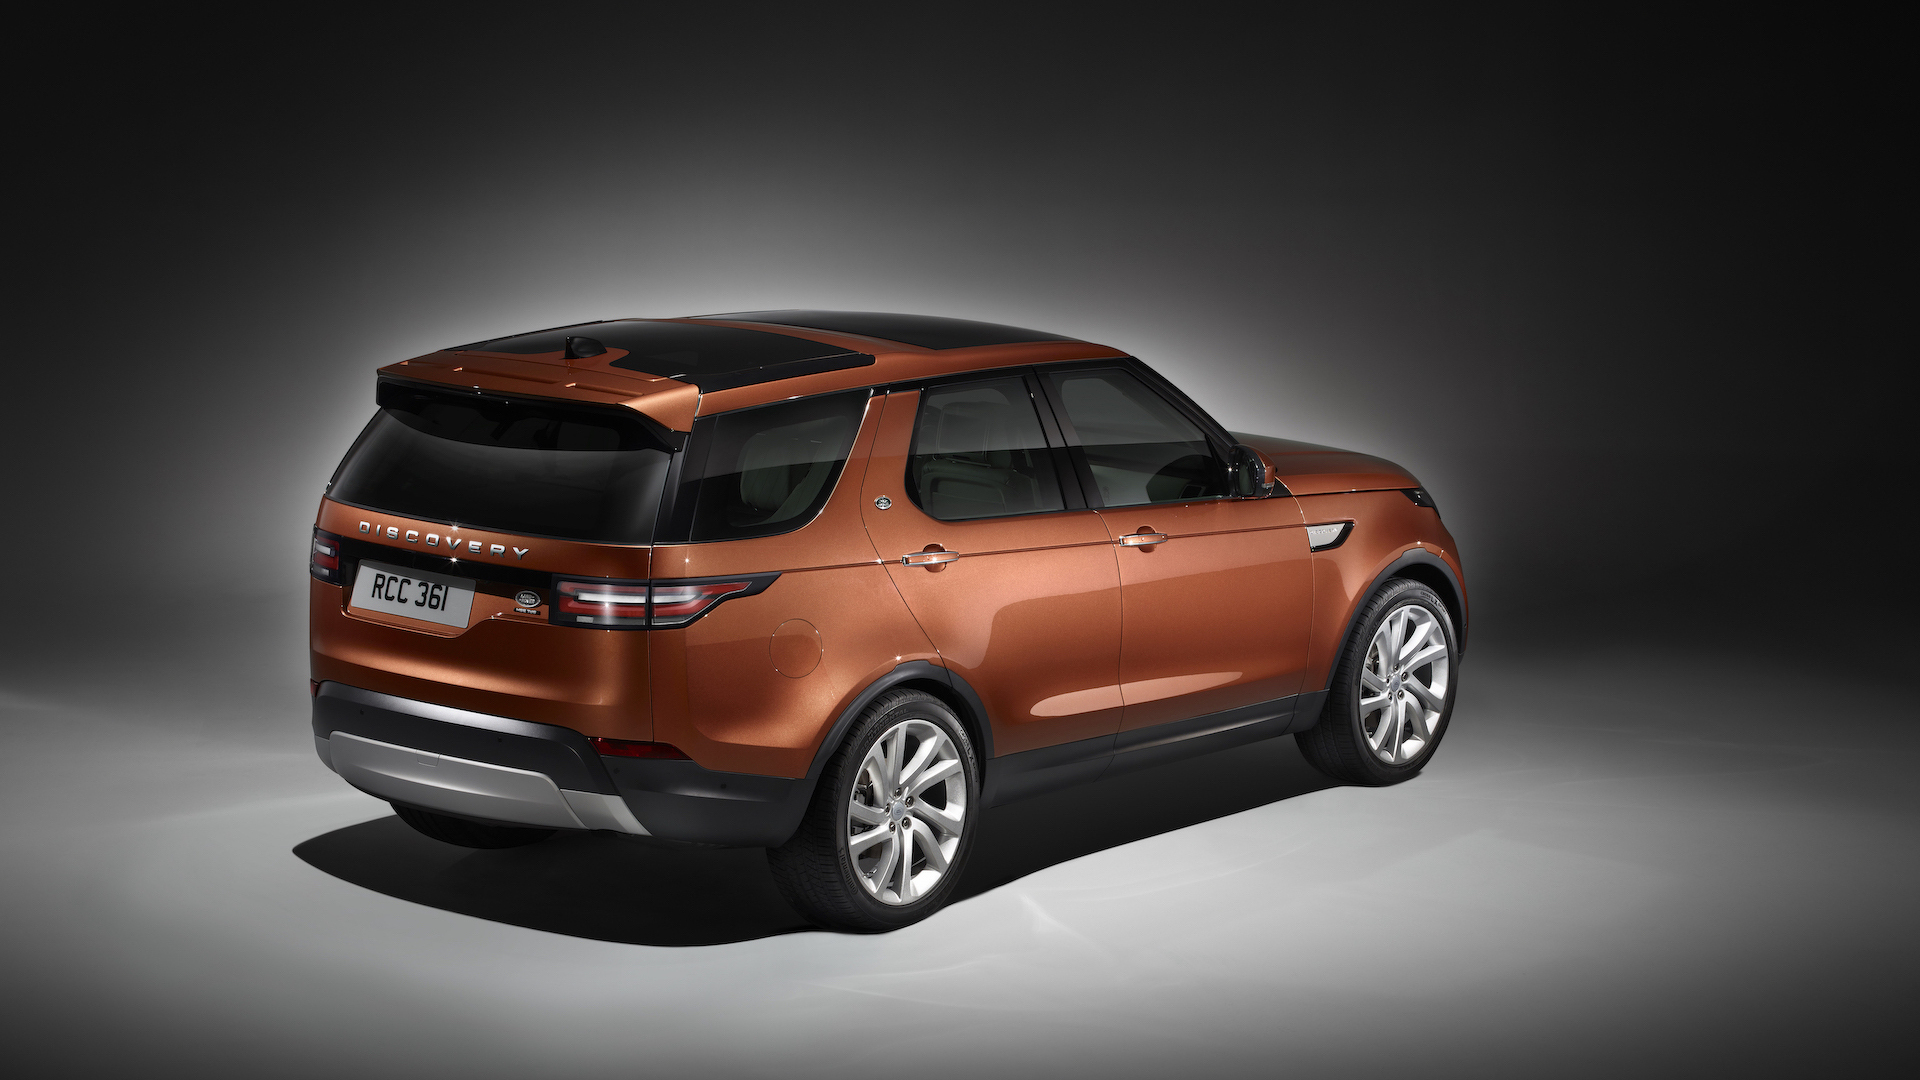 nuova-land-rover-discovery-29.jpg